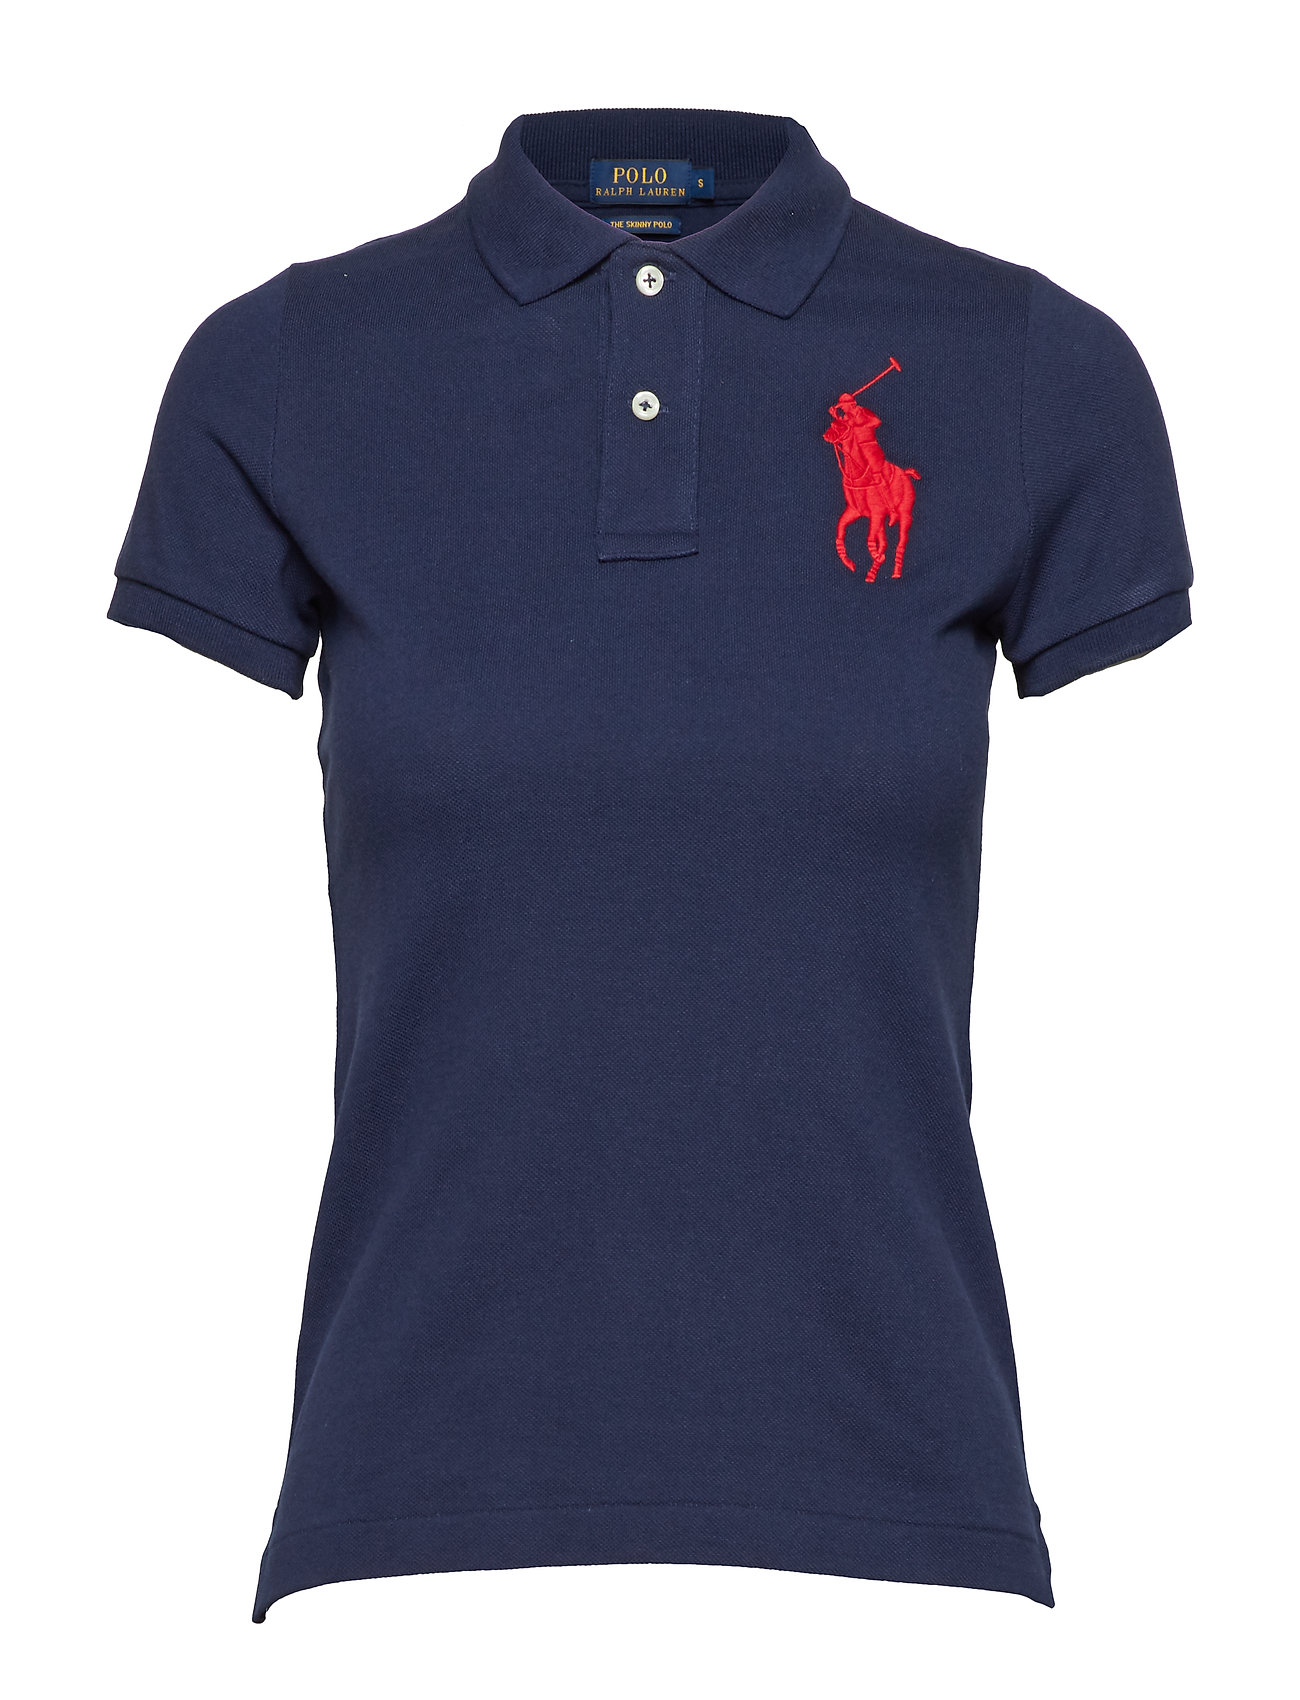 Polo Ralph Lauren Skinny-Fit Big Pony Polo Shirt - NEWPORT NAVY